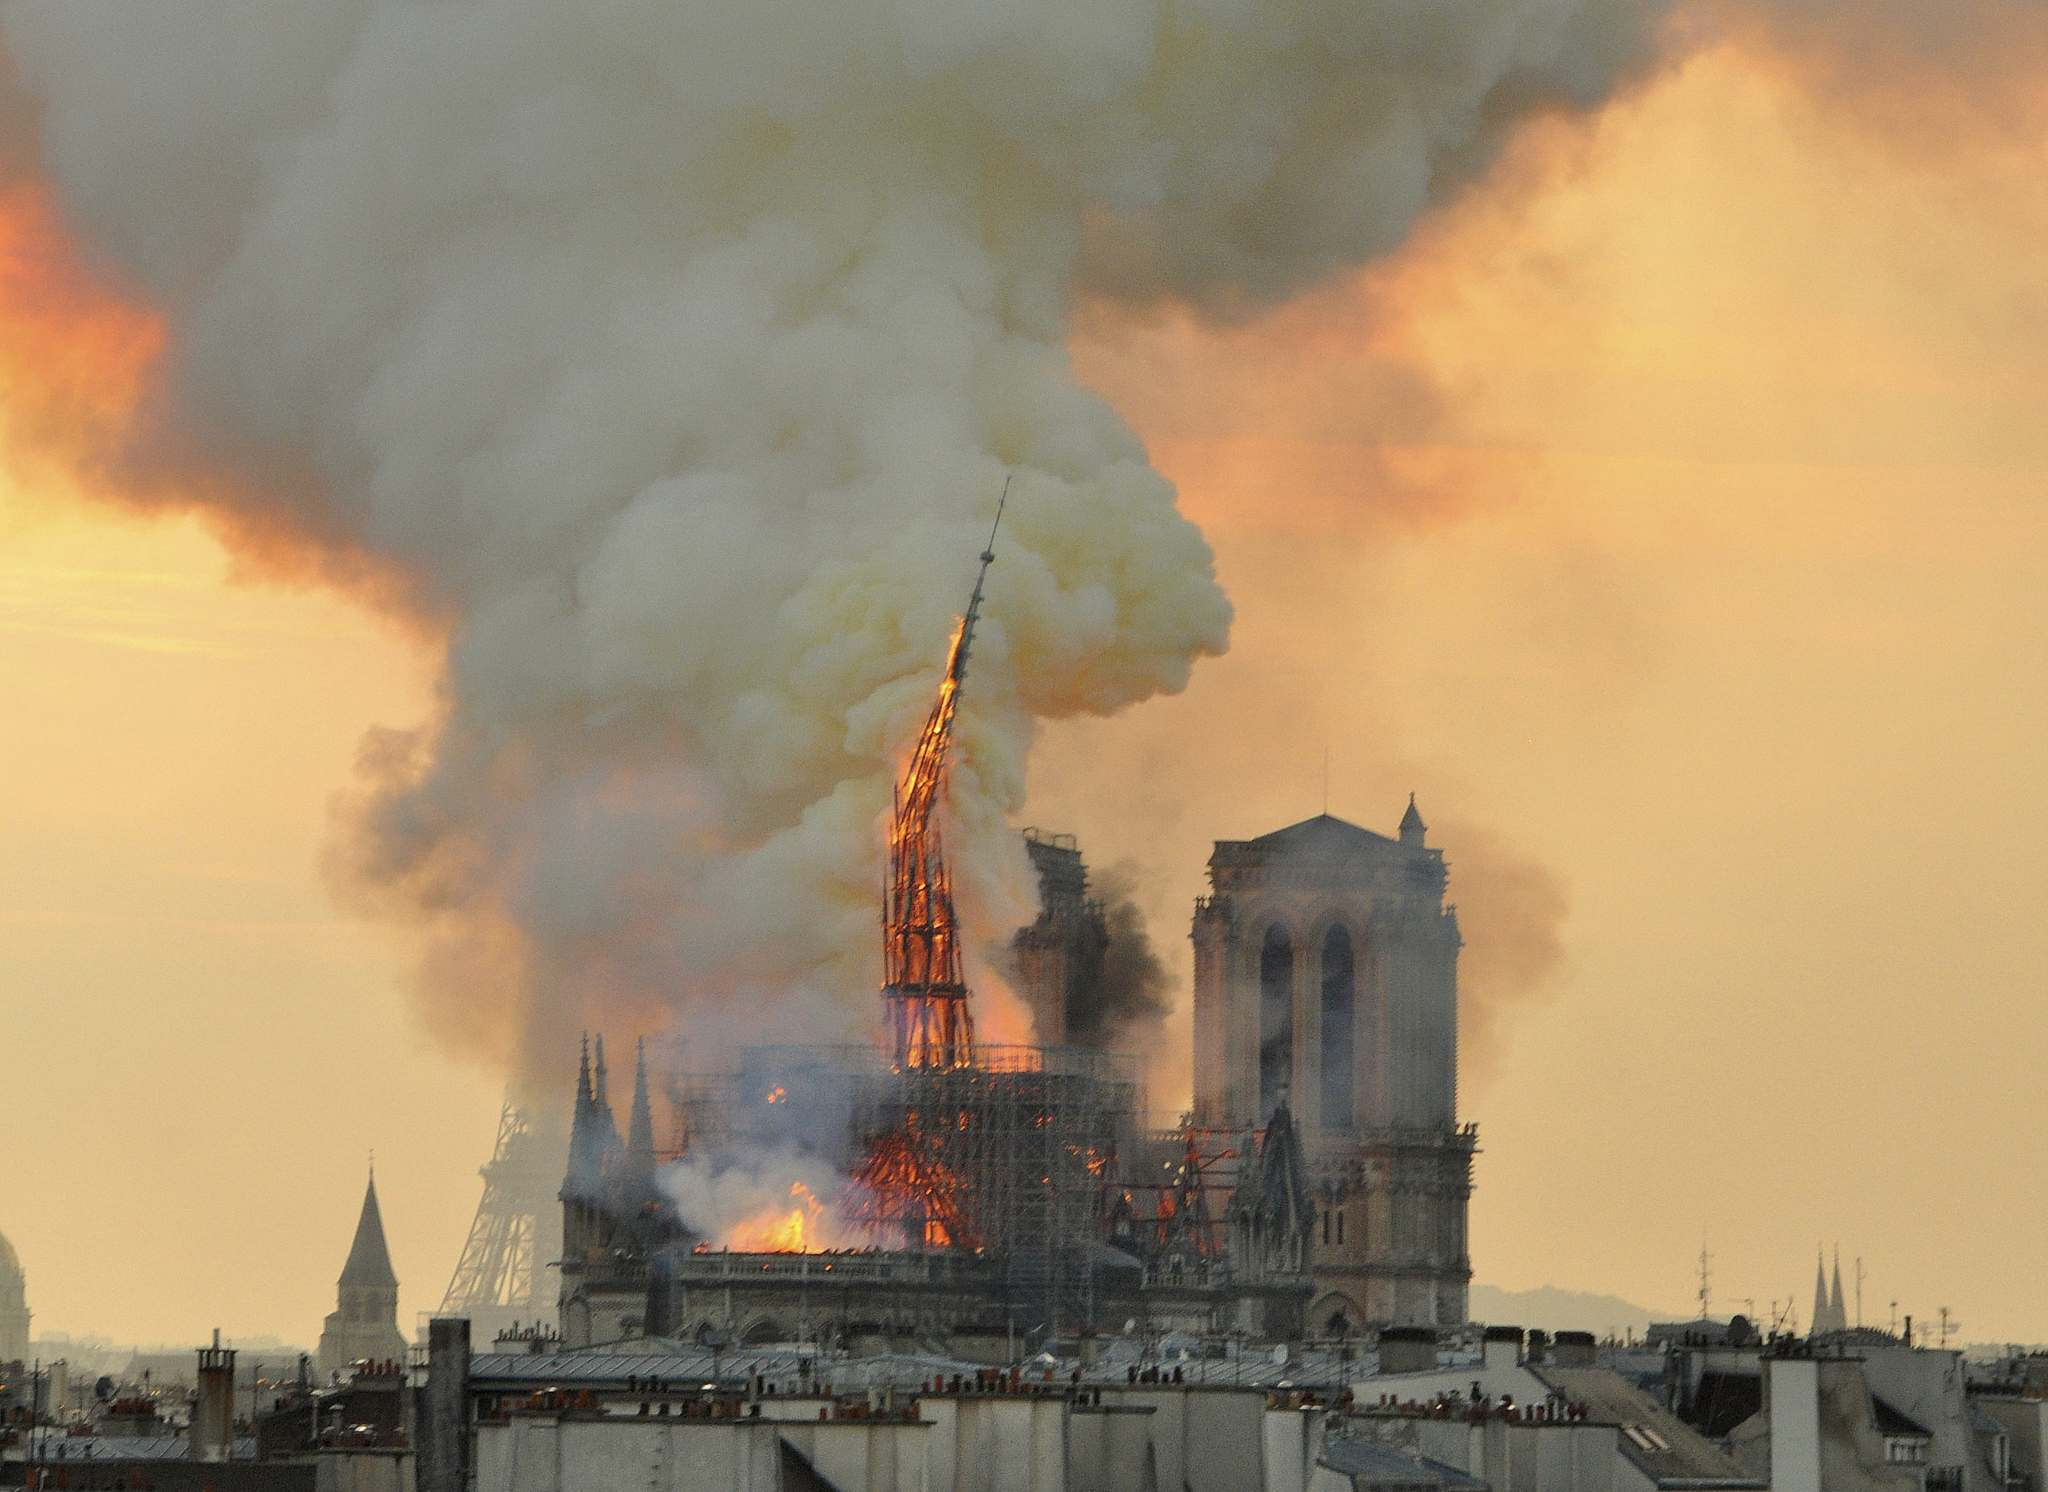 Inferno in 12th-century Paris cathedral momentarily stops time, delivers sobering message in disposable, replaceable world